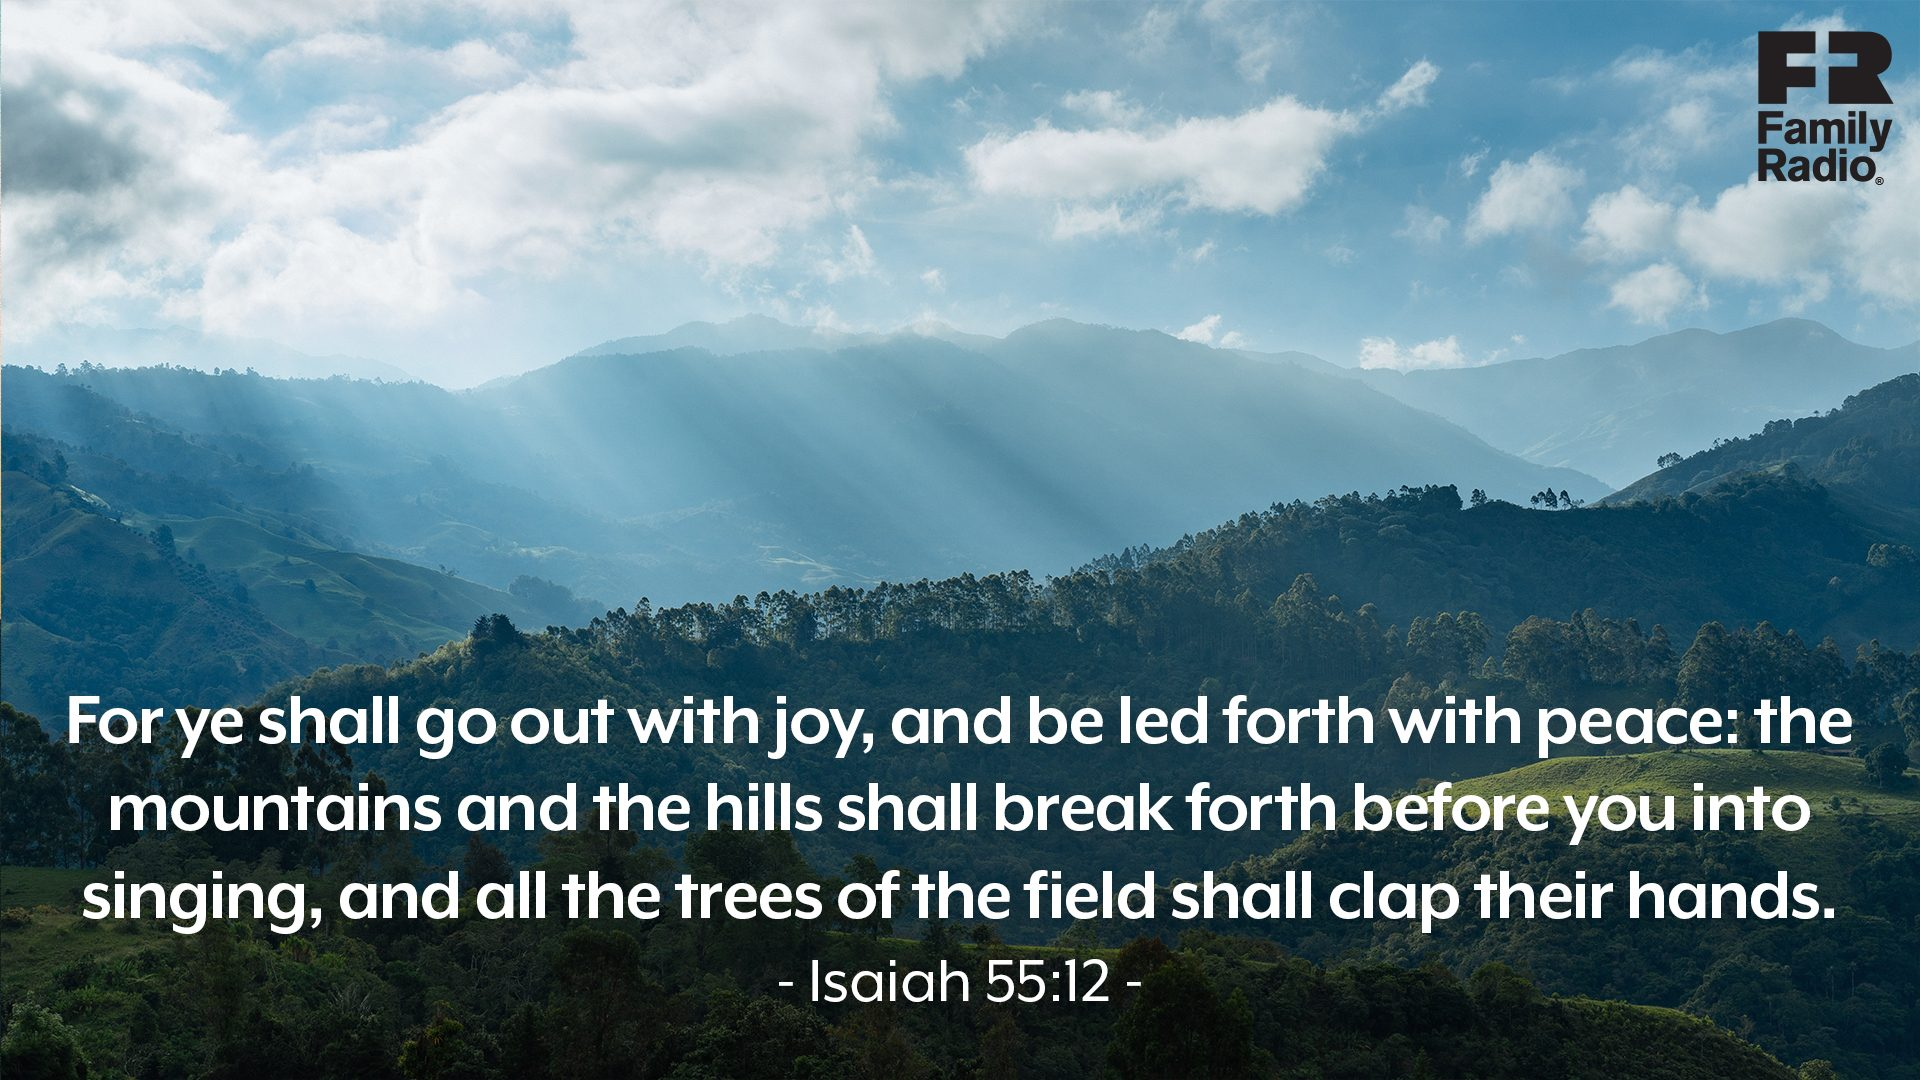 """For ye shall go out with joy, and be led forth with peace: the mountains and the hills shall break forth before you into singing, and all the trees of the field shall clap their hands."""